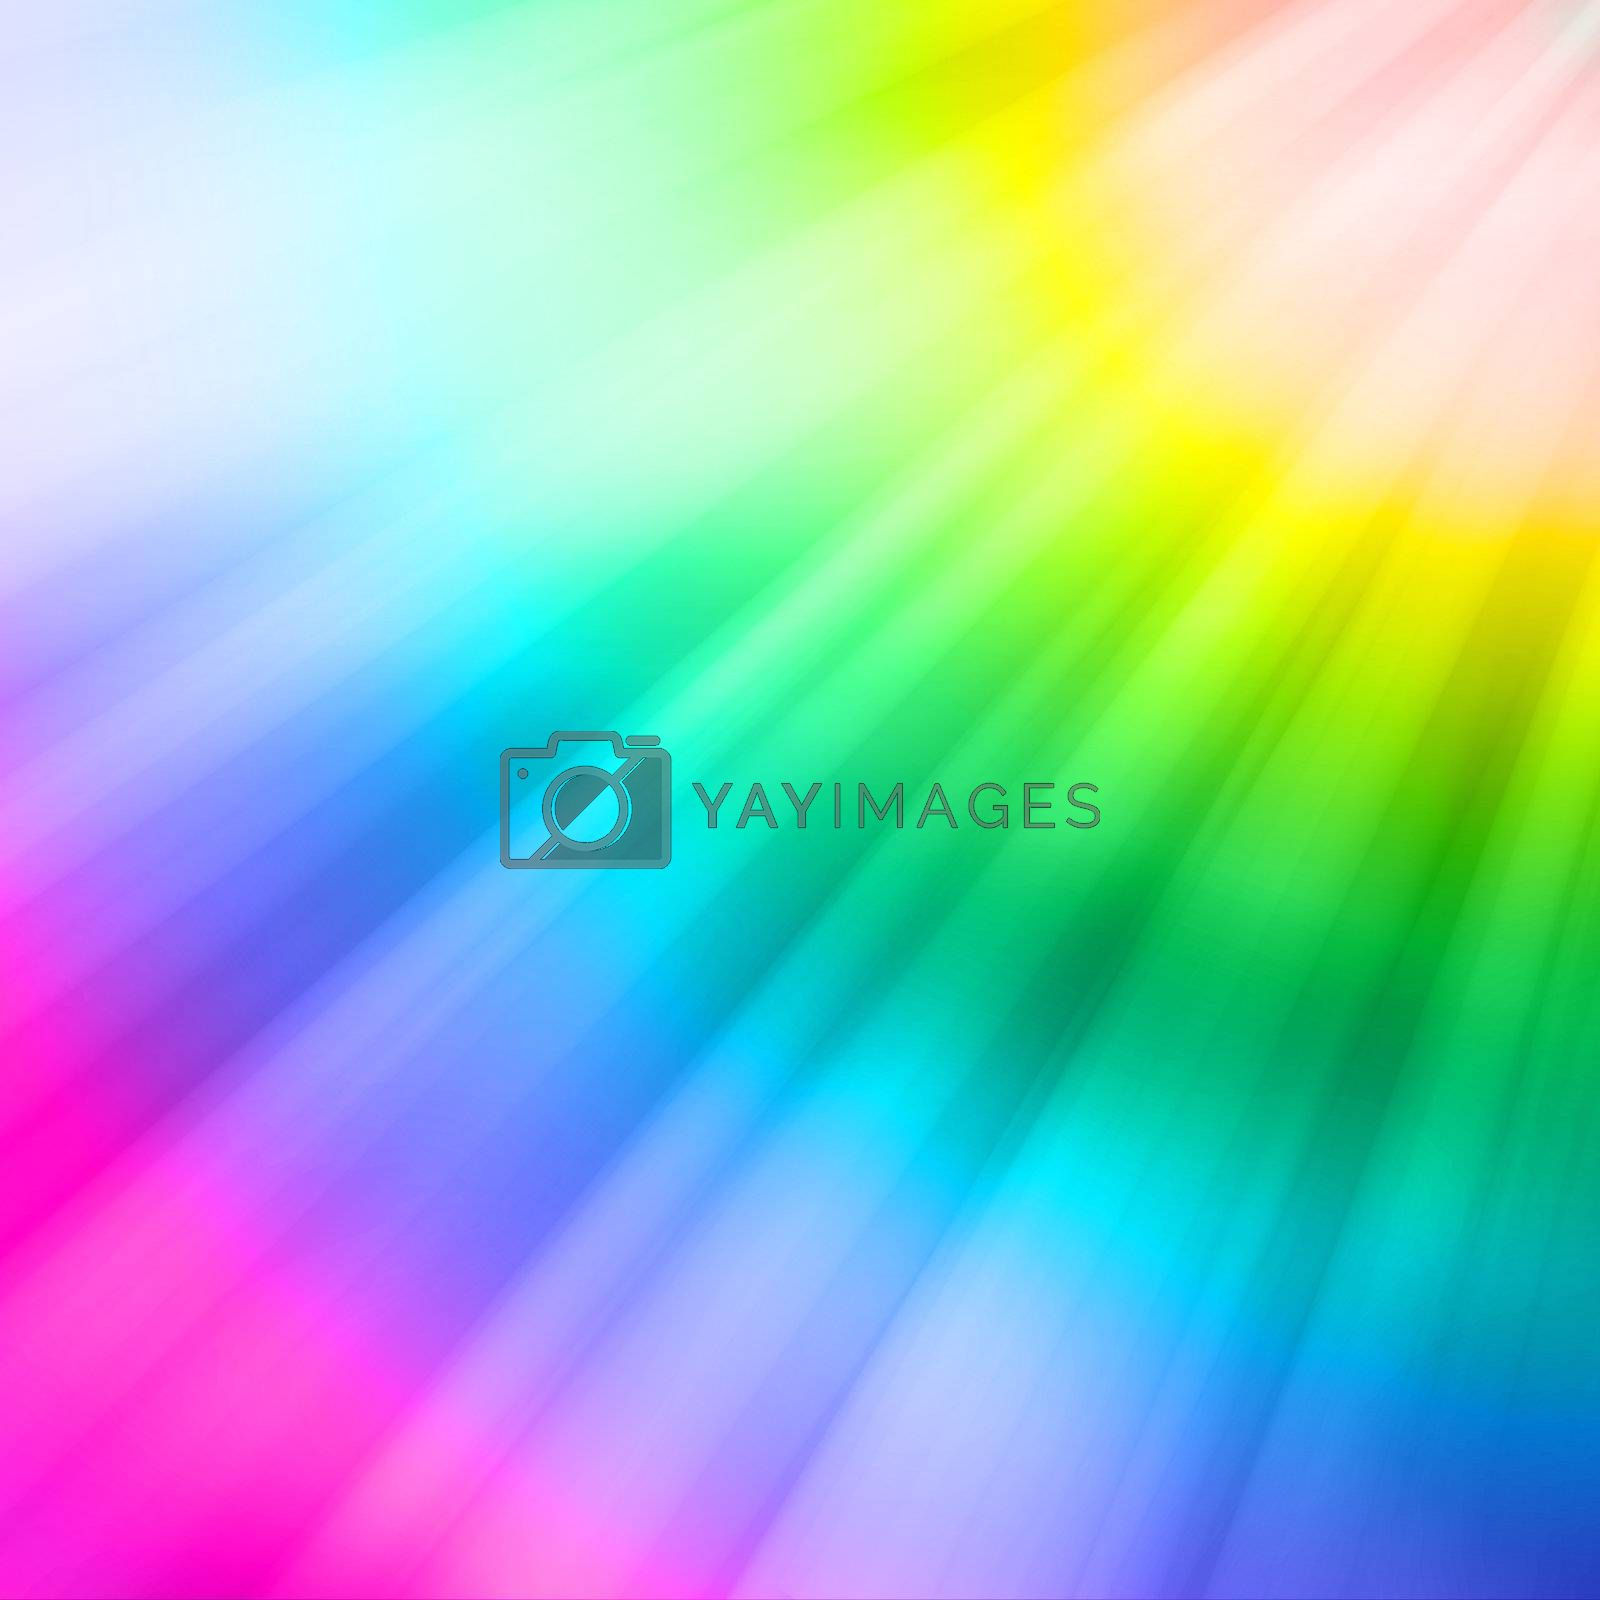 Reflections appearing in a downward angle on the colors of the rainbow